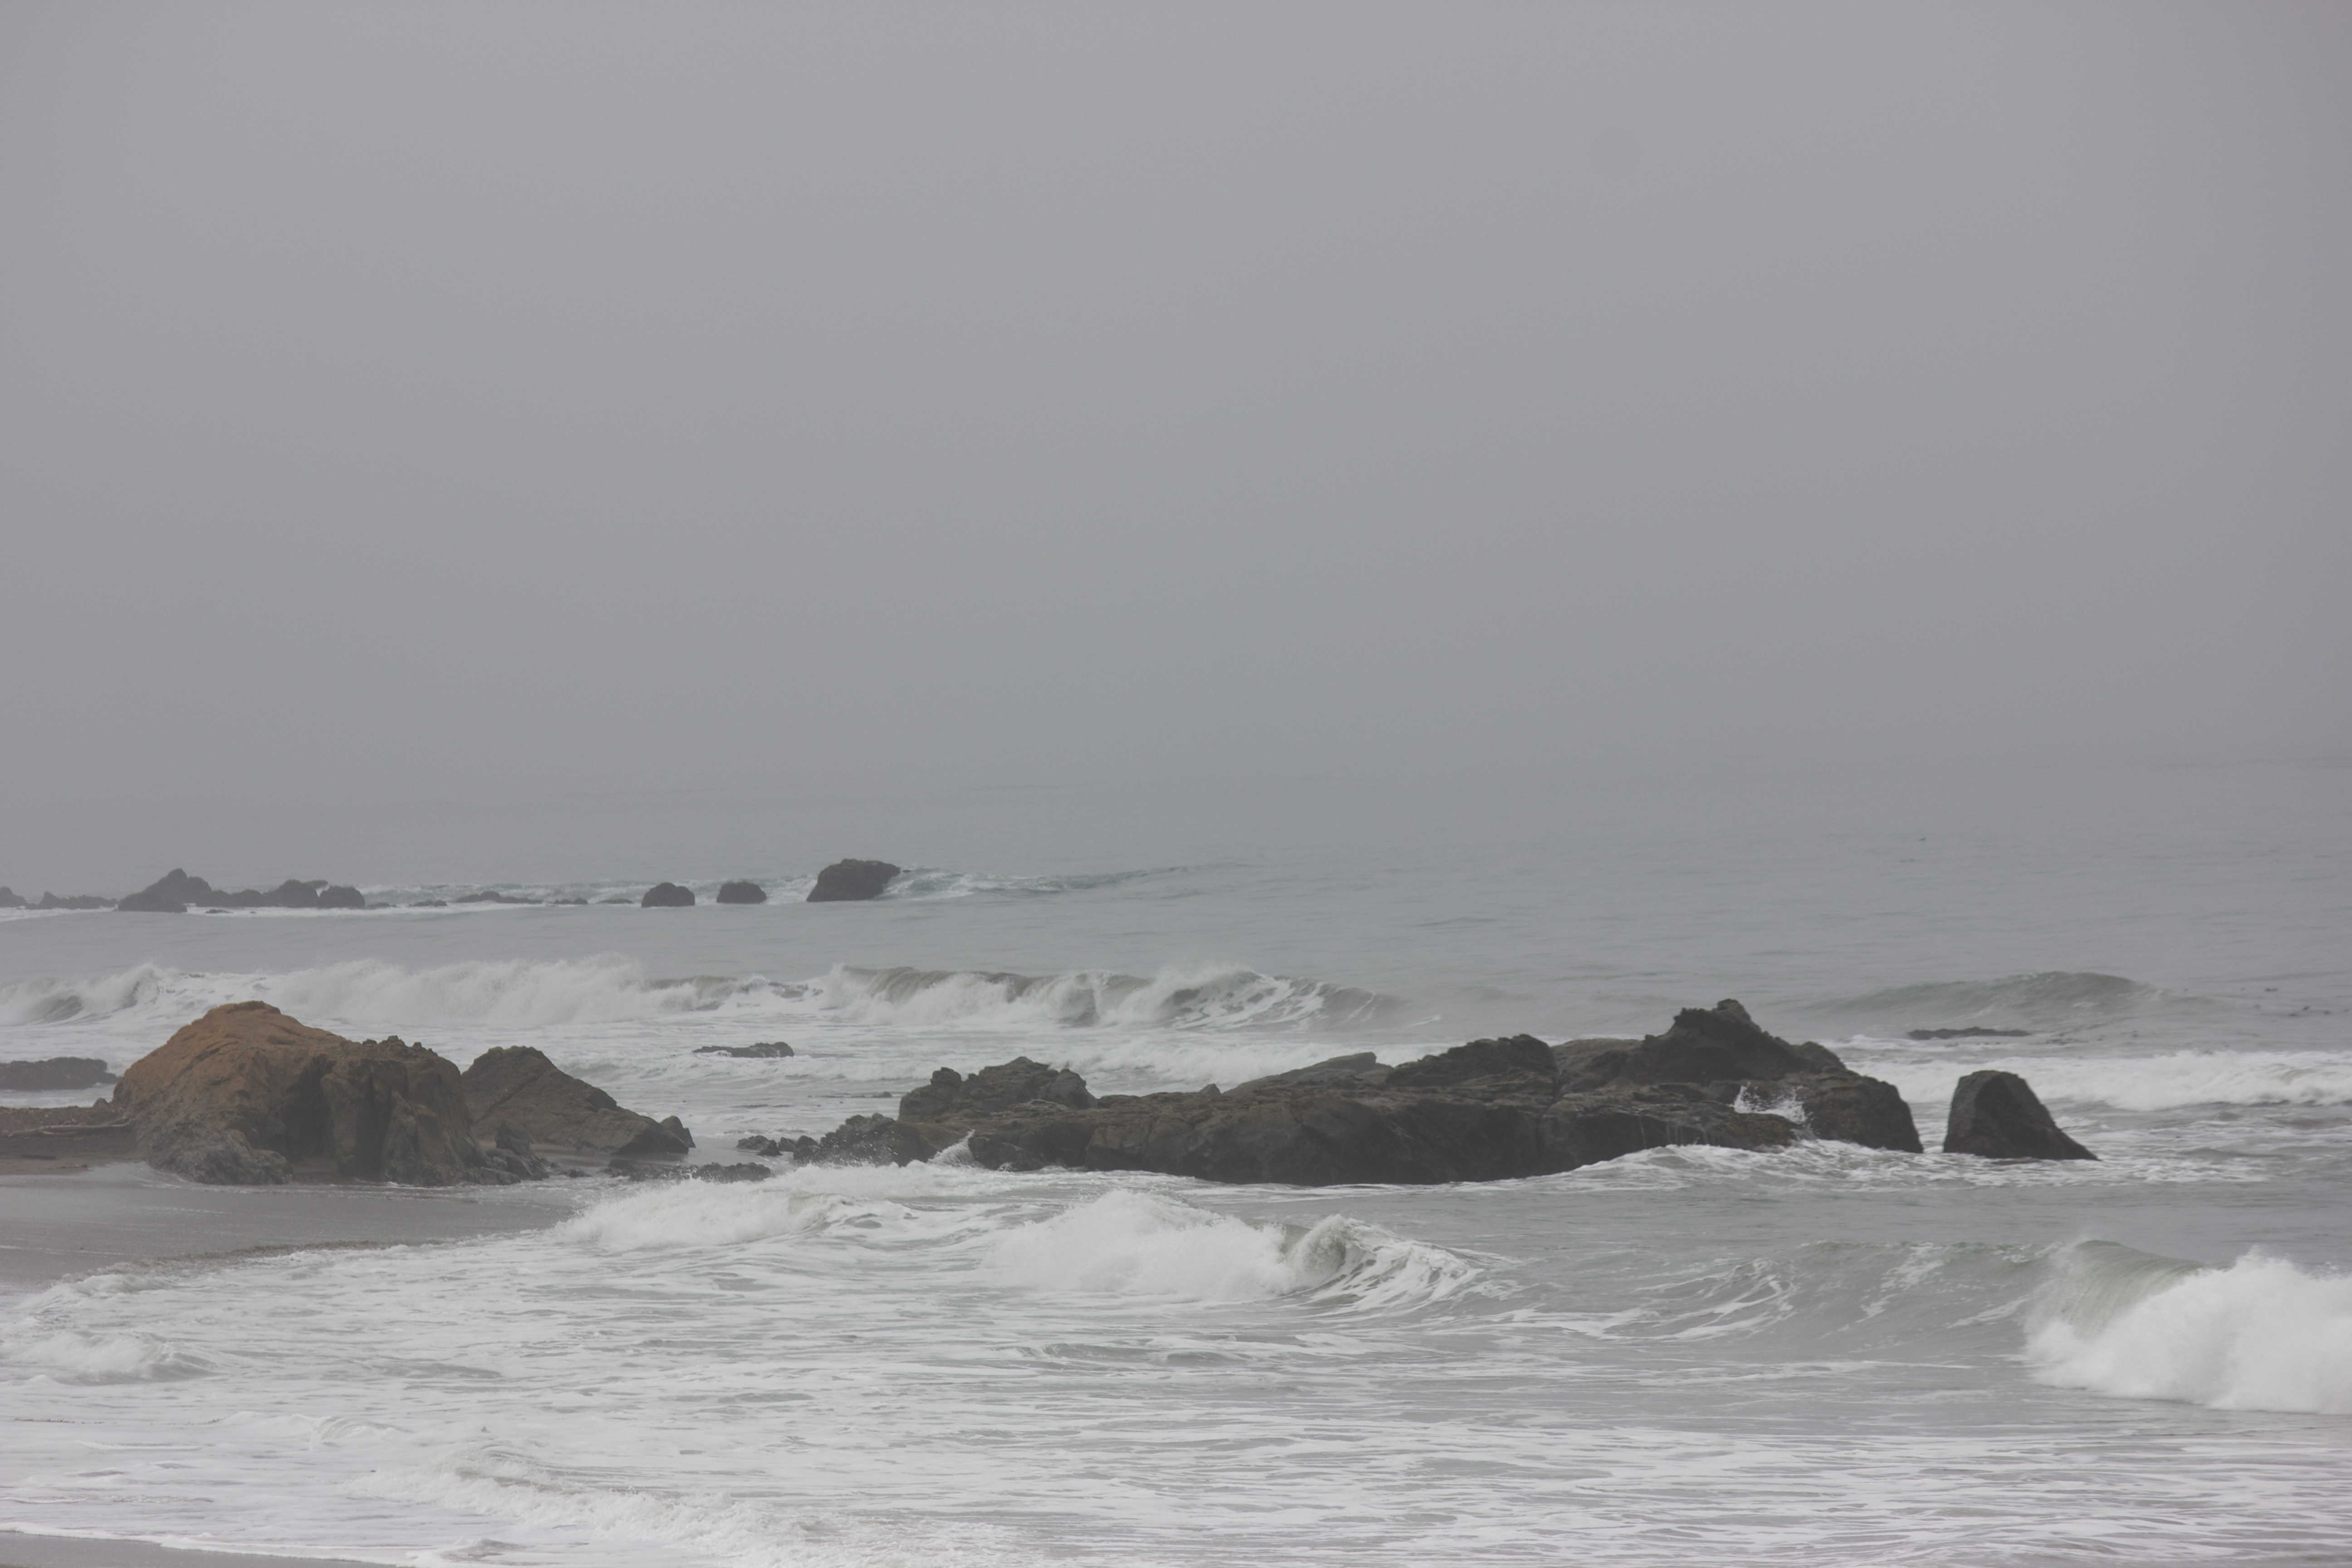 Waves near the rocky coast before a foggy blurred horizon.